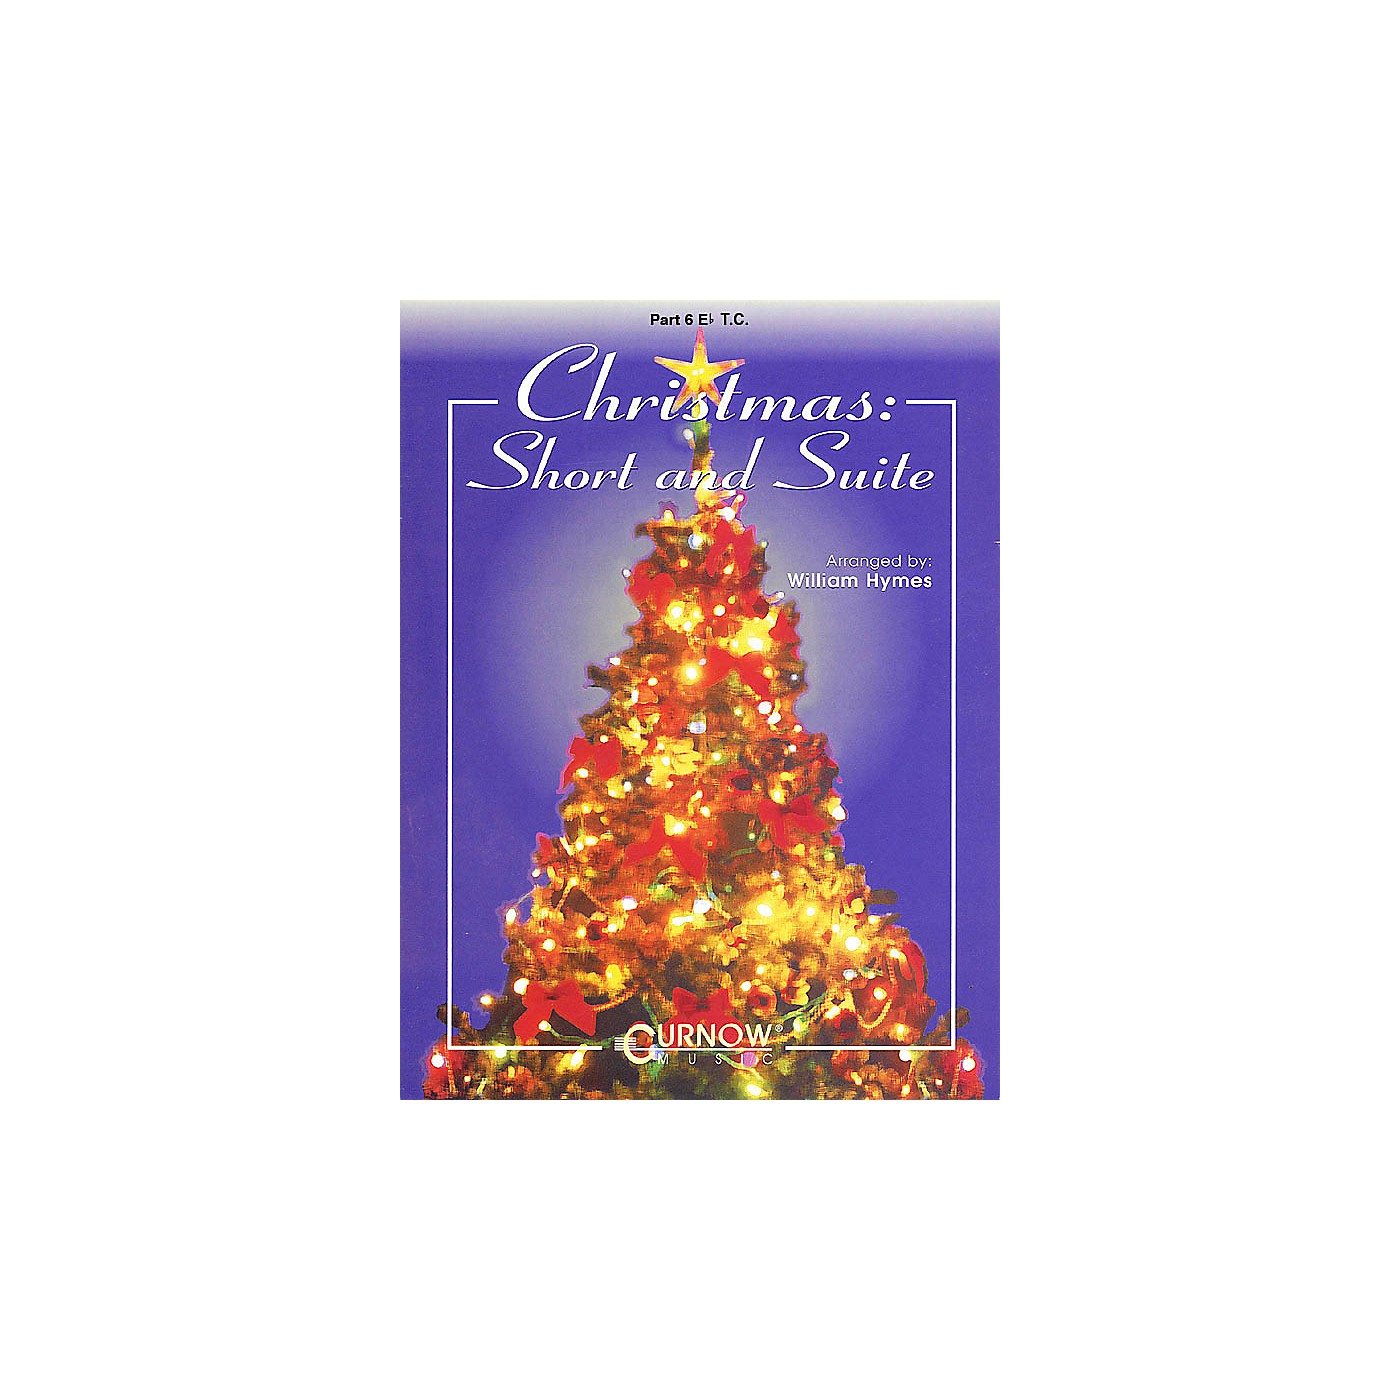 Curnow Music Christmas: Short and Suite (Part 6 in Eb (Treble Clef)) Concert Band Level 2-4 Arranged by William Himes thumbnail